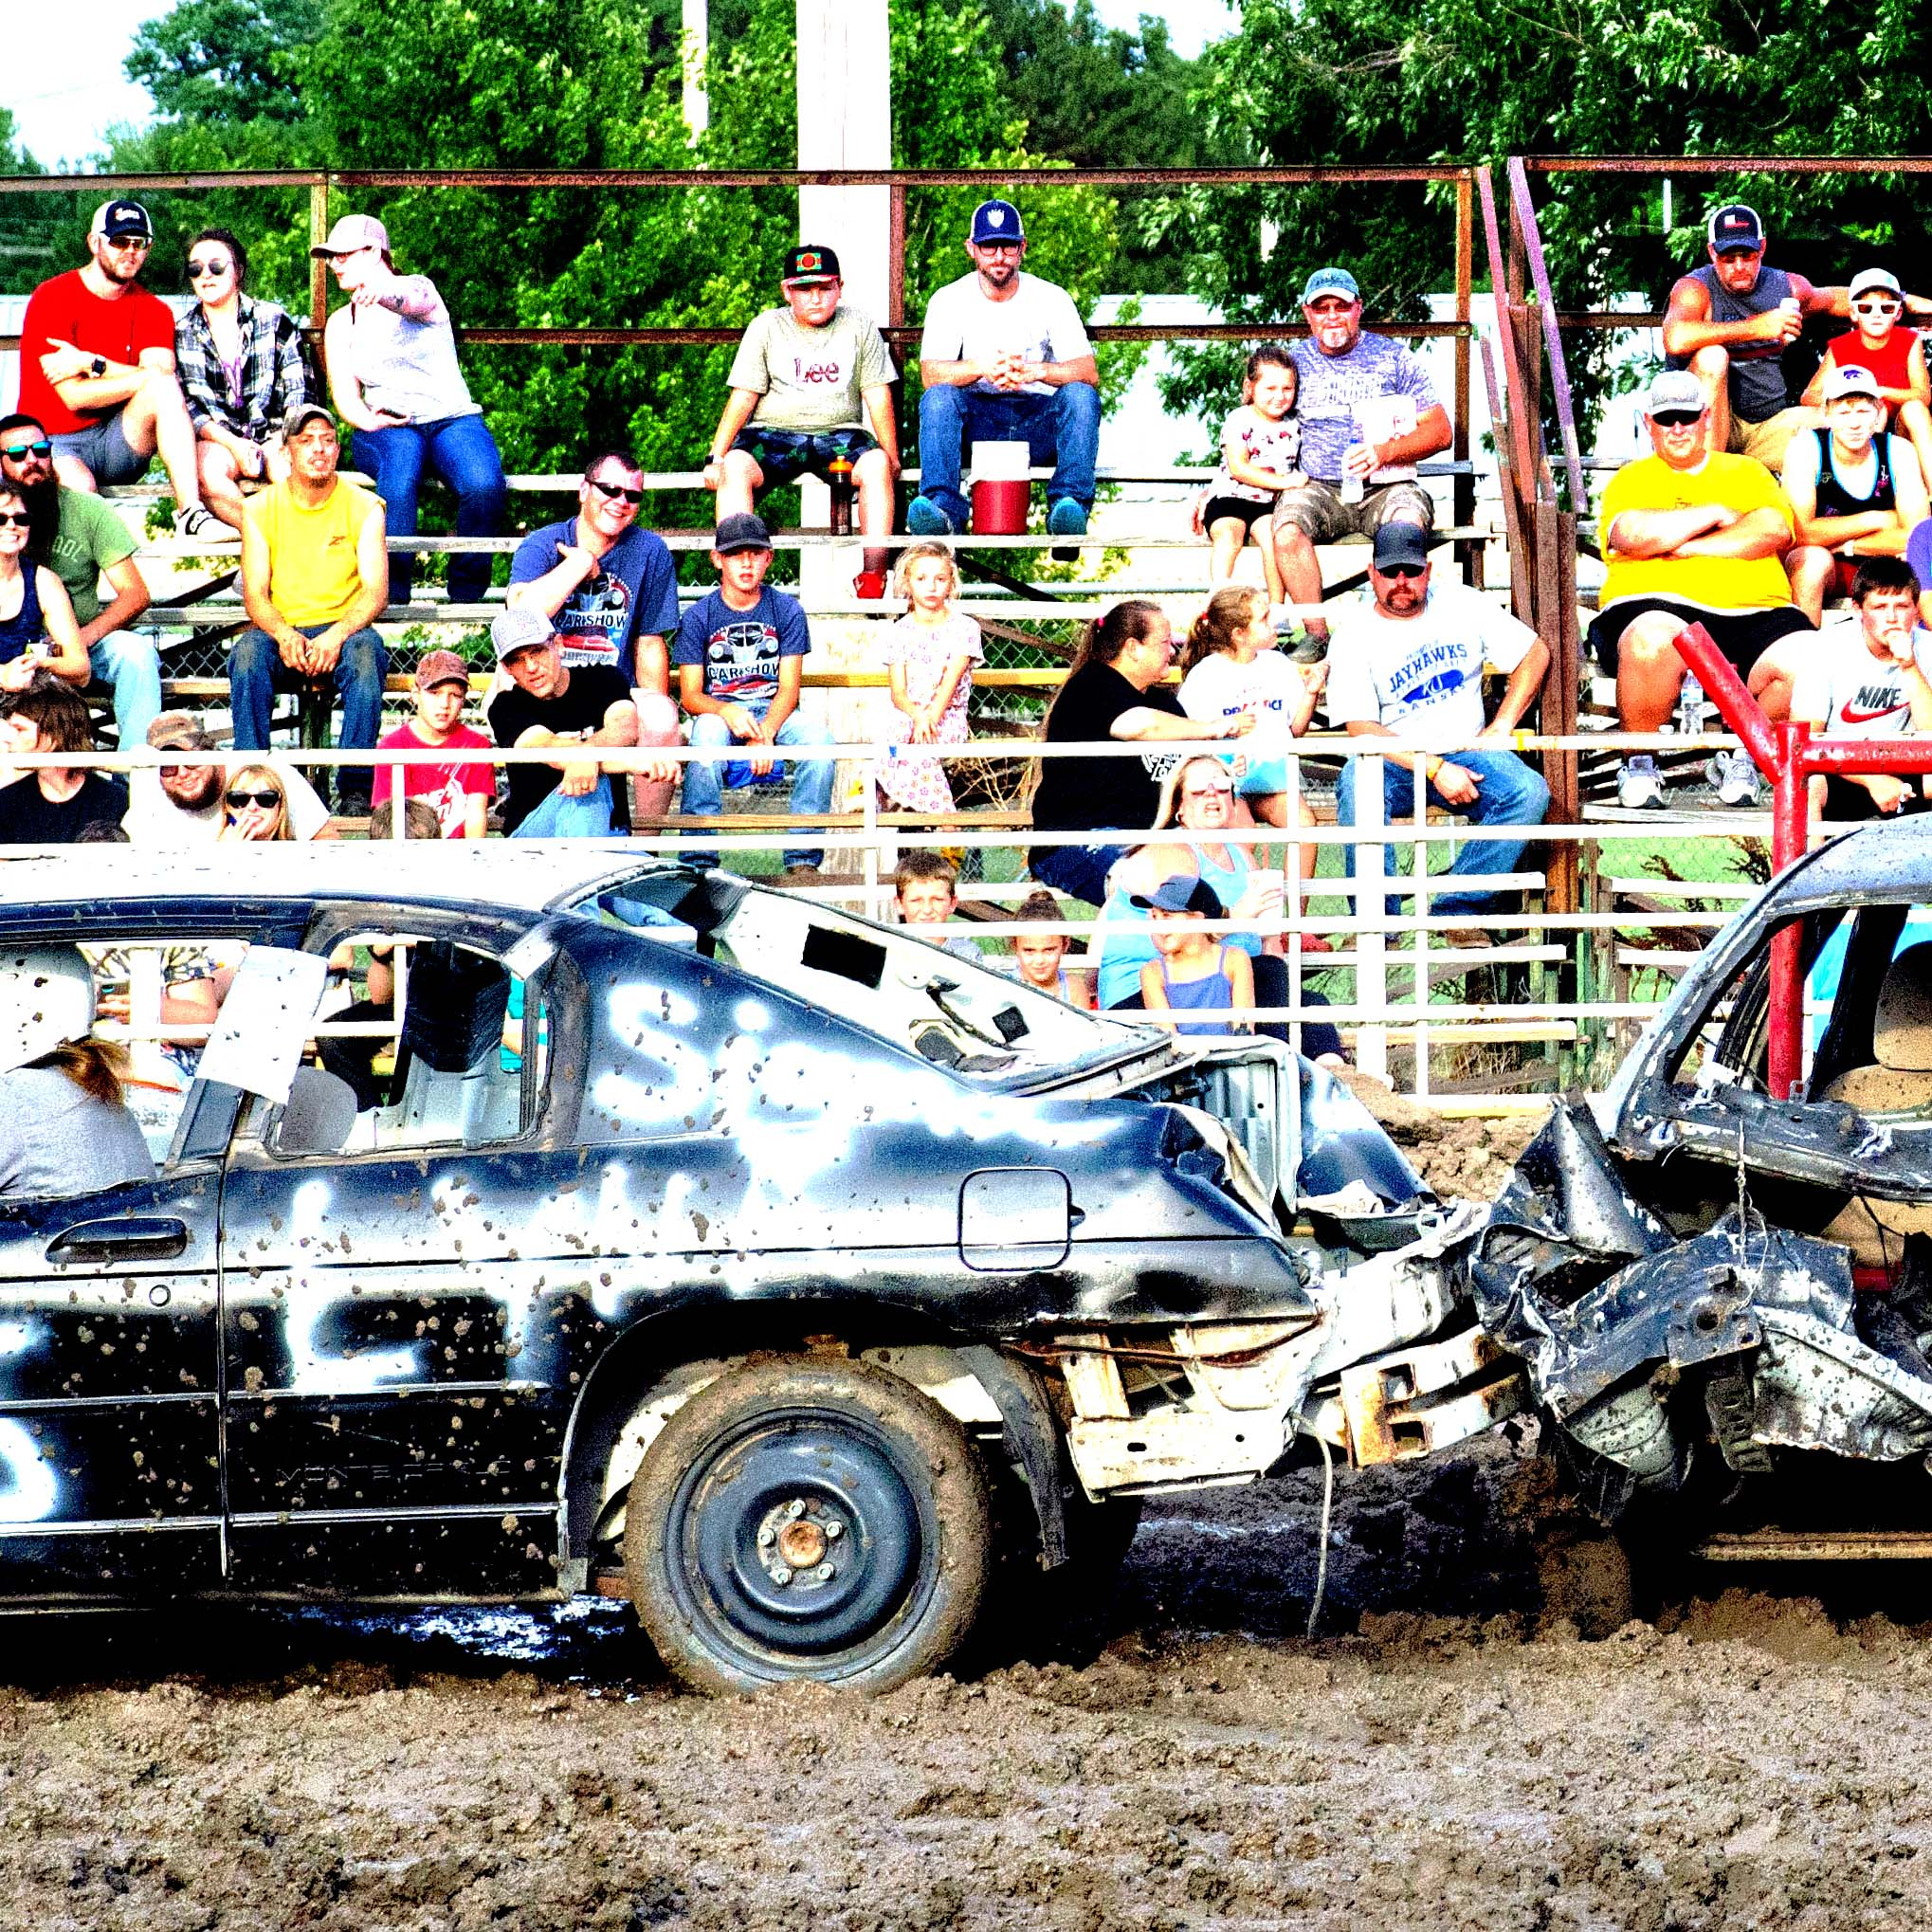 Emily Jost, left, and Alex Ratzlaff jump to block the shot of a McPherson player Saturday, while Tara Proffitt positions herself to respond should the ball get through. The Trojans beat McPherson to advance to the championship match, where they lost to Bishop Carroll.